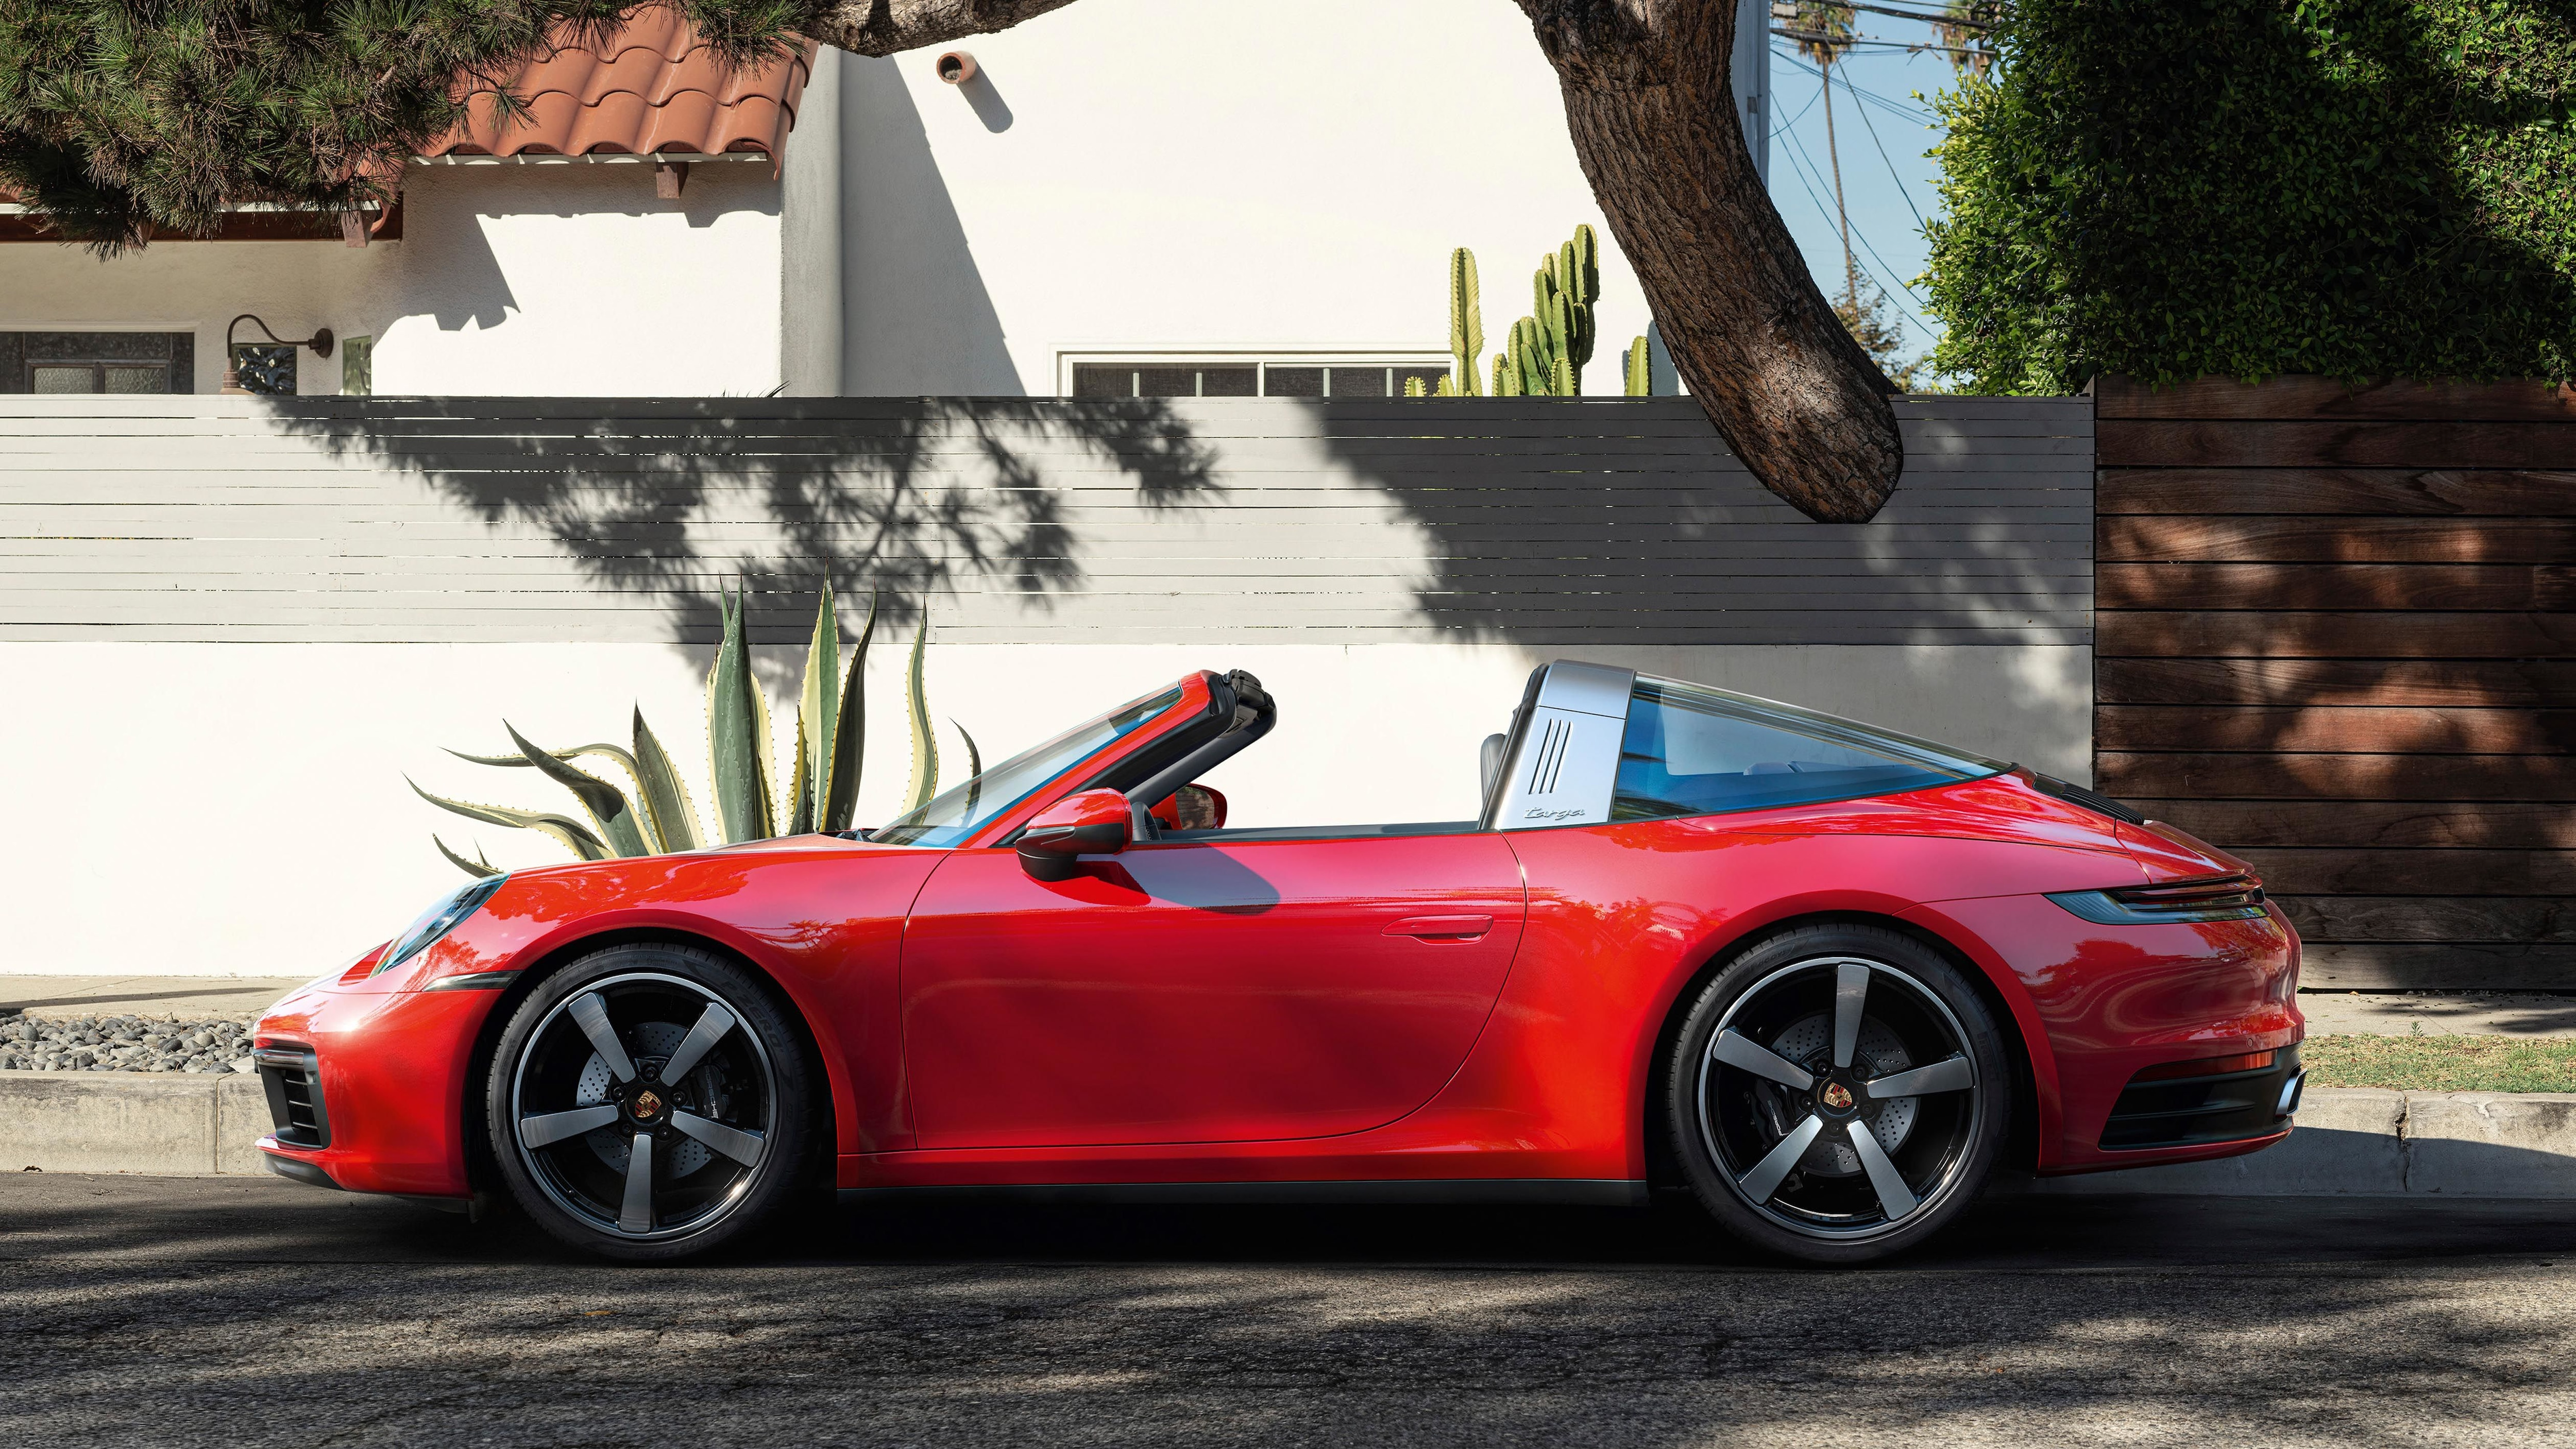 The Targa is powered by a six-cylinder, three-litre boxer engine with twin turbochargers. It now delivers 283 kW (385 PS) and accelerates from zero to 100 km/h in just 4.2 seconds – one tenth faster than before.